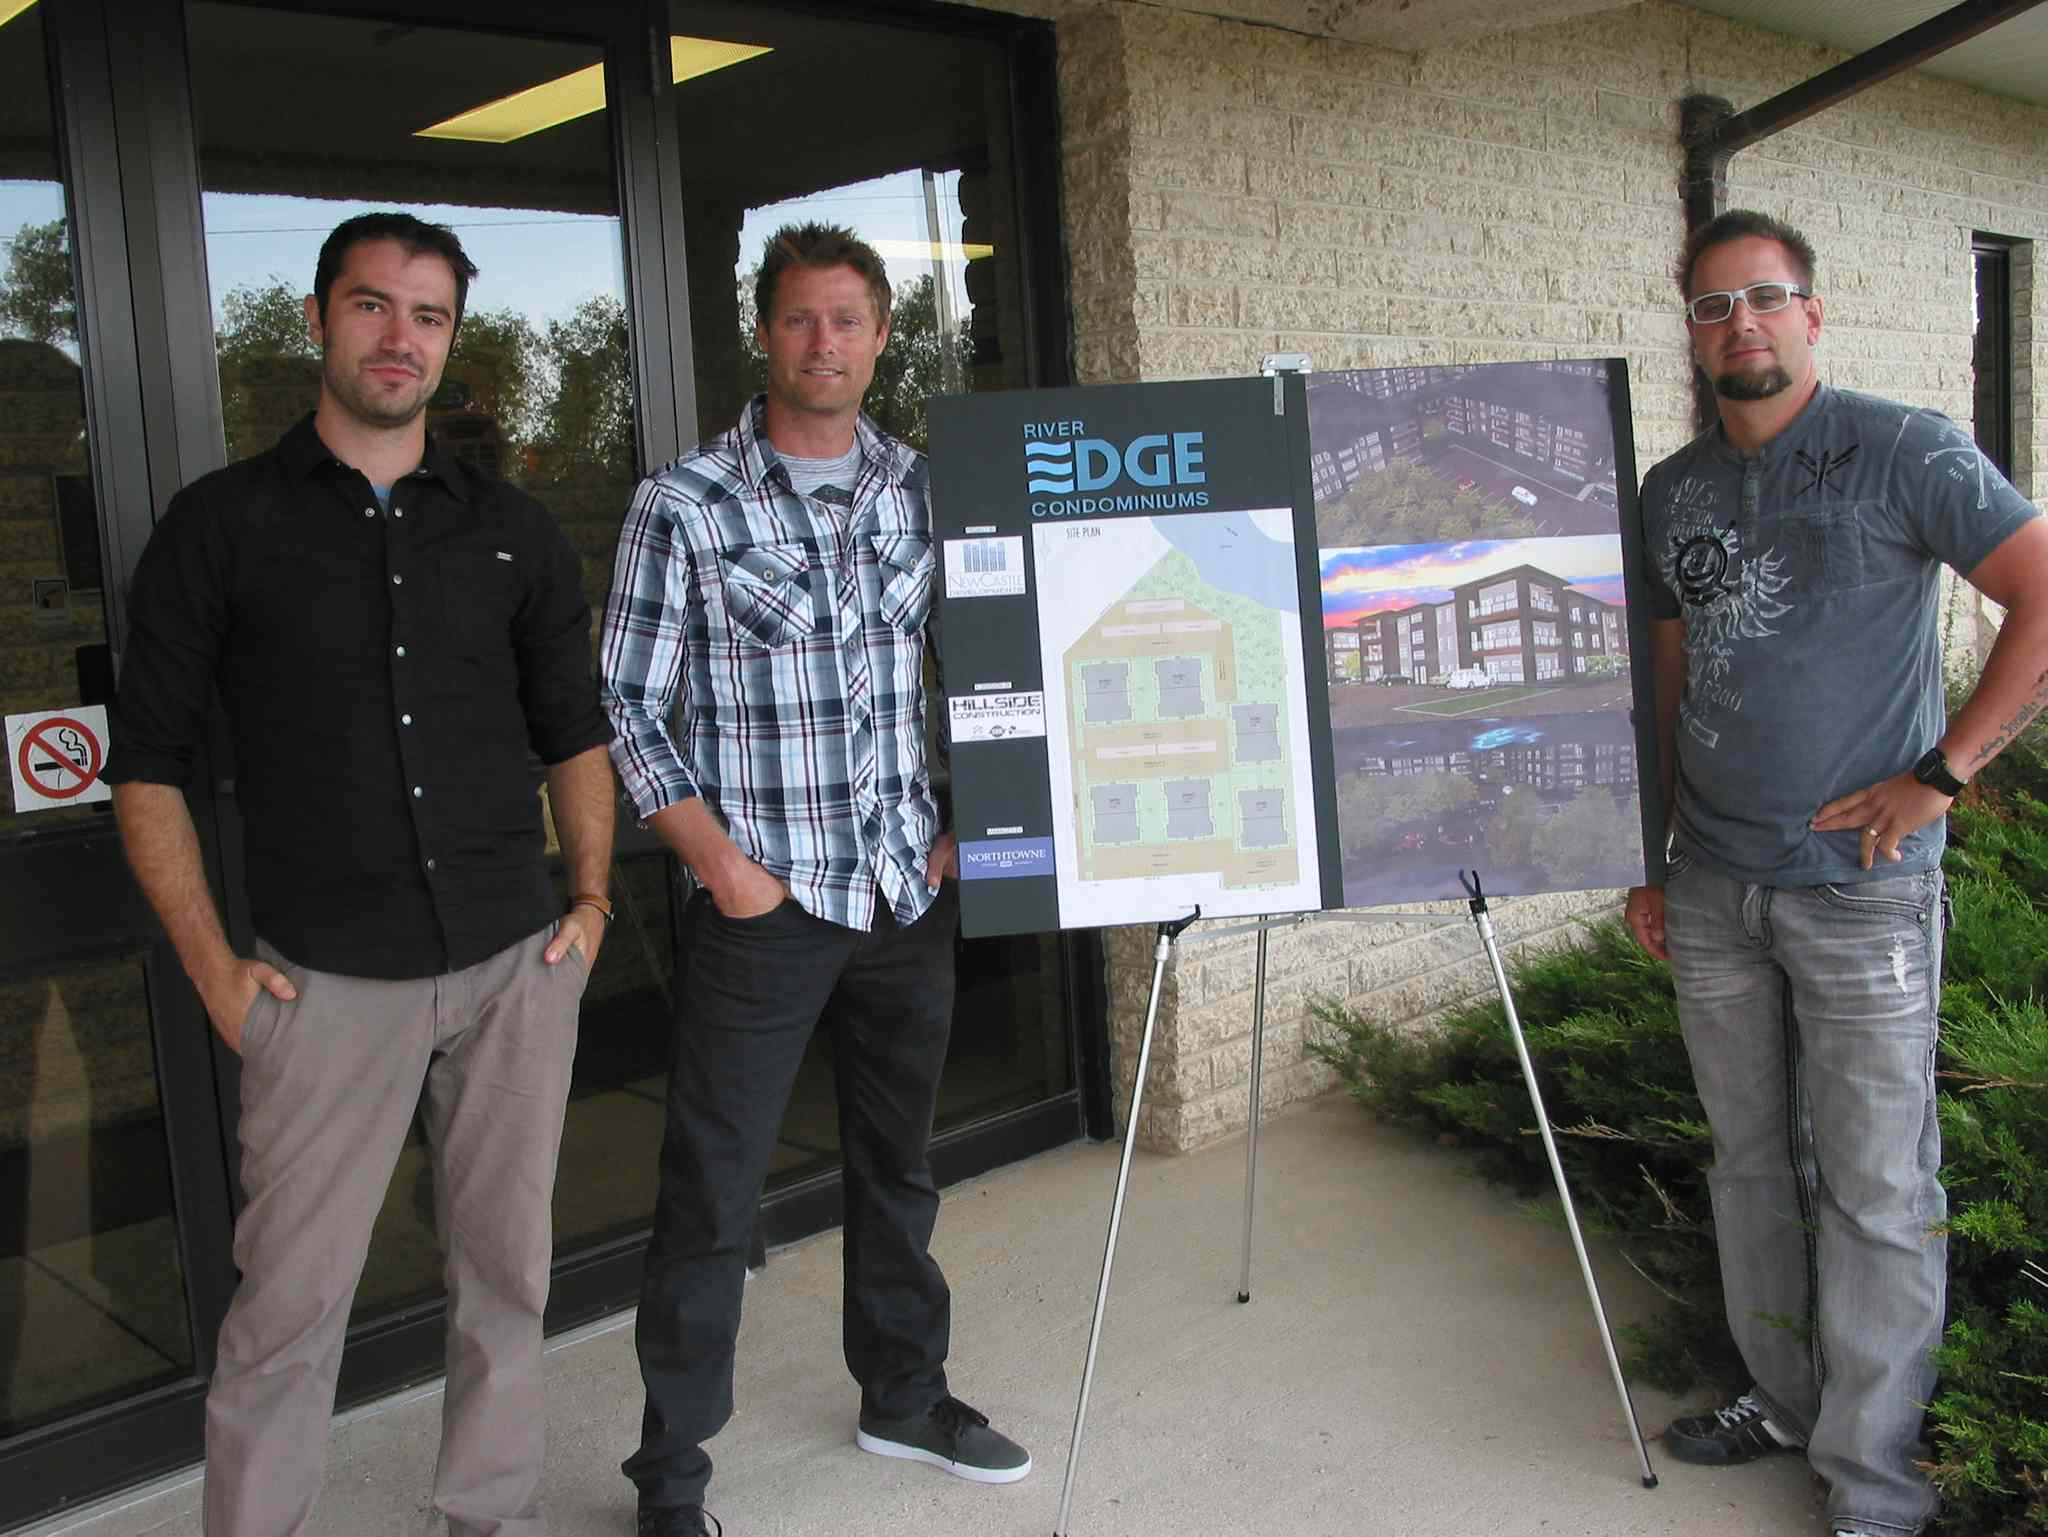 (Left) Terry Thiessen, drafting technician with Hillside Construction, Josh Friesen, a partner with Newcastle Development, and Travis Friesen, president of Hillside Construction, attended the RM of Macdonald council meeting on Aug. 12 to discuss their River Edge  condominium project in La Salle. A conditional use permit has been approved for the project, though there are still other steps to be taken before construction can begin.